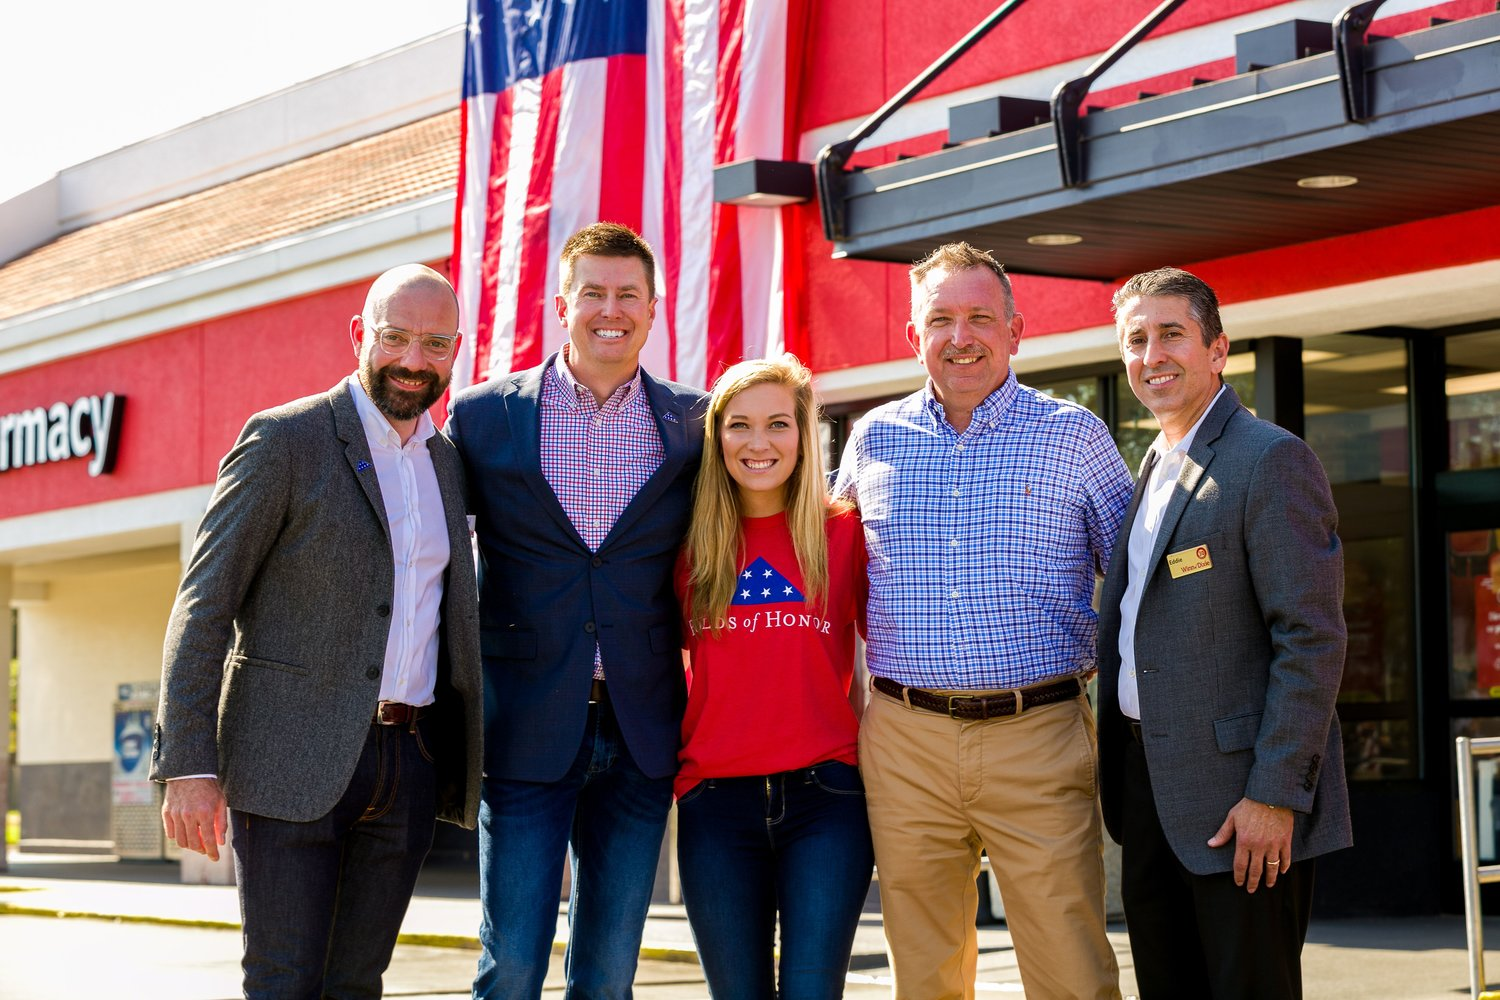 Southeastern Grocers 'rounds up' support to honor military